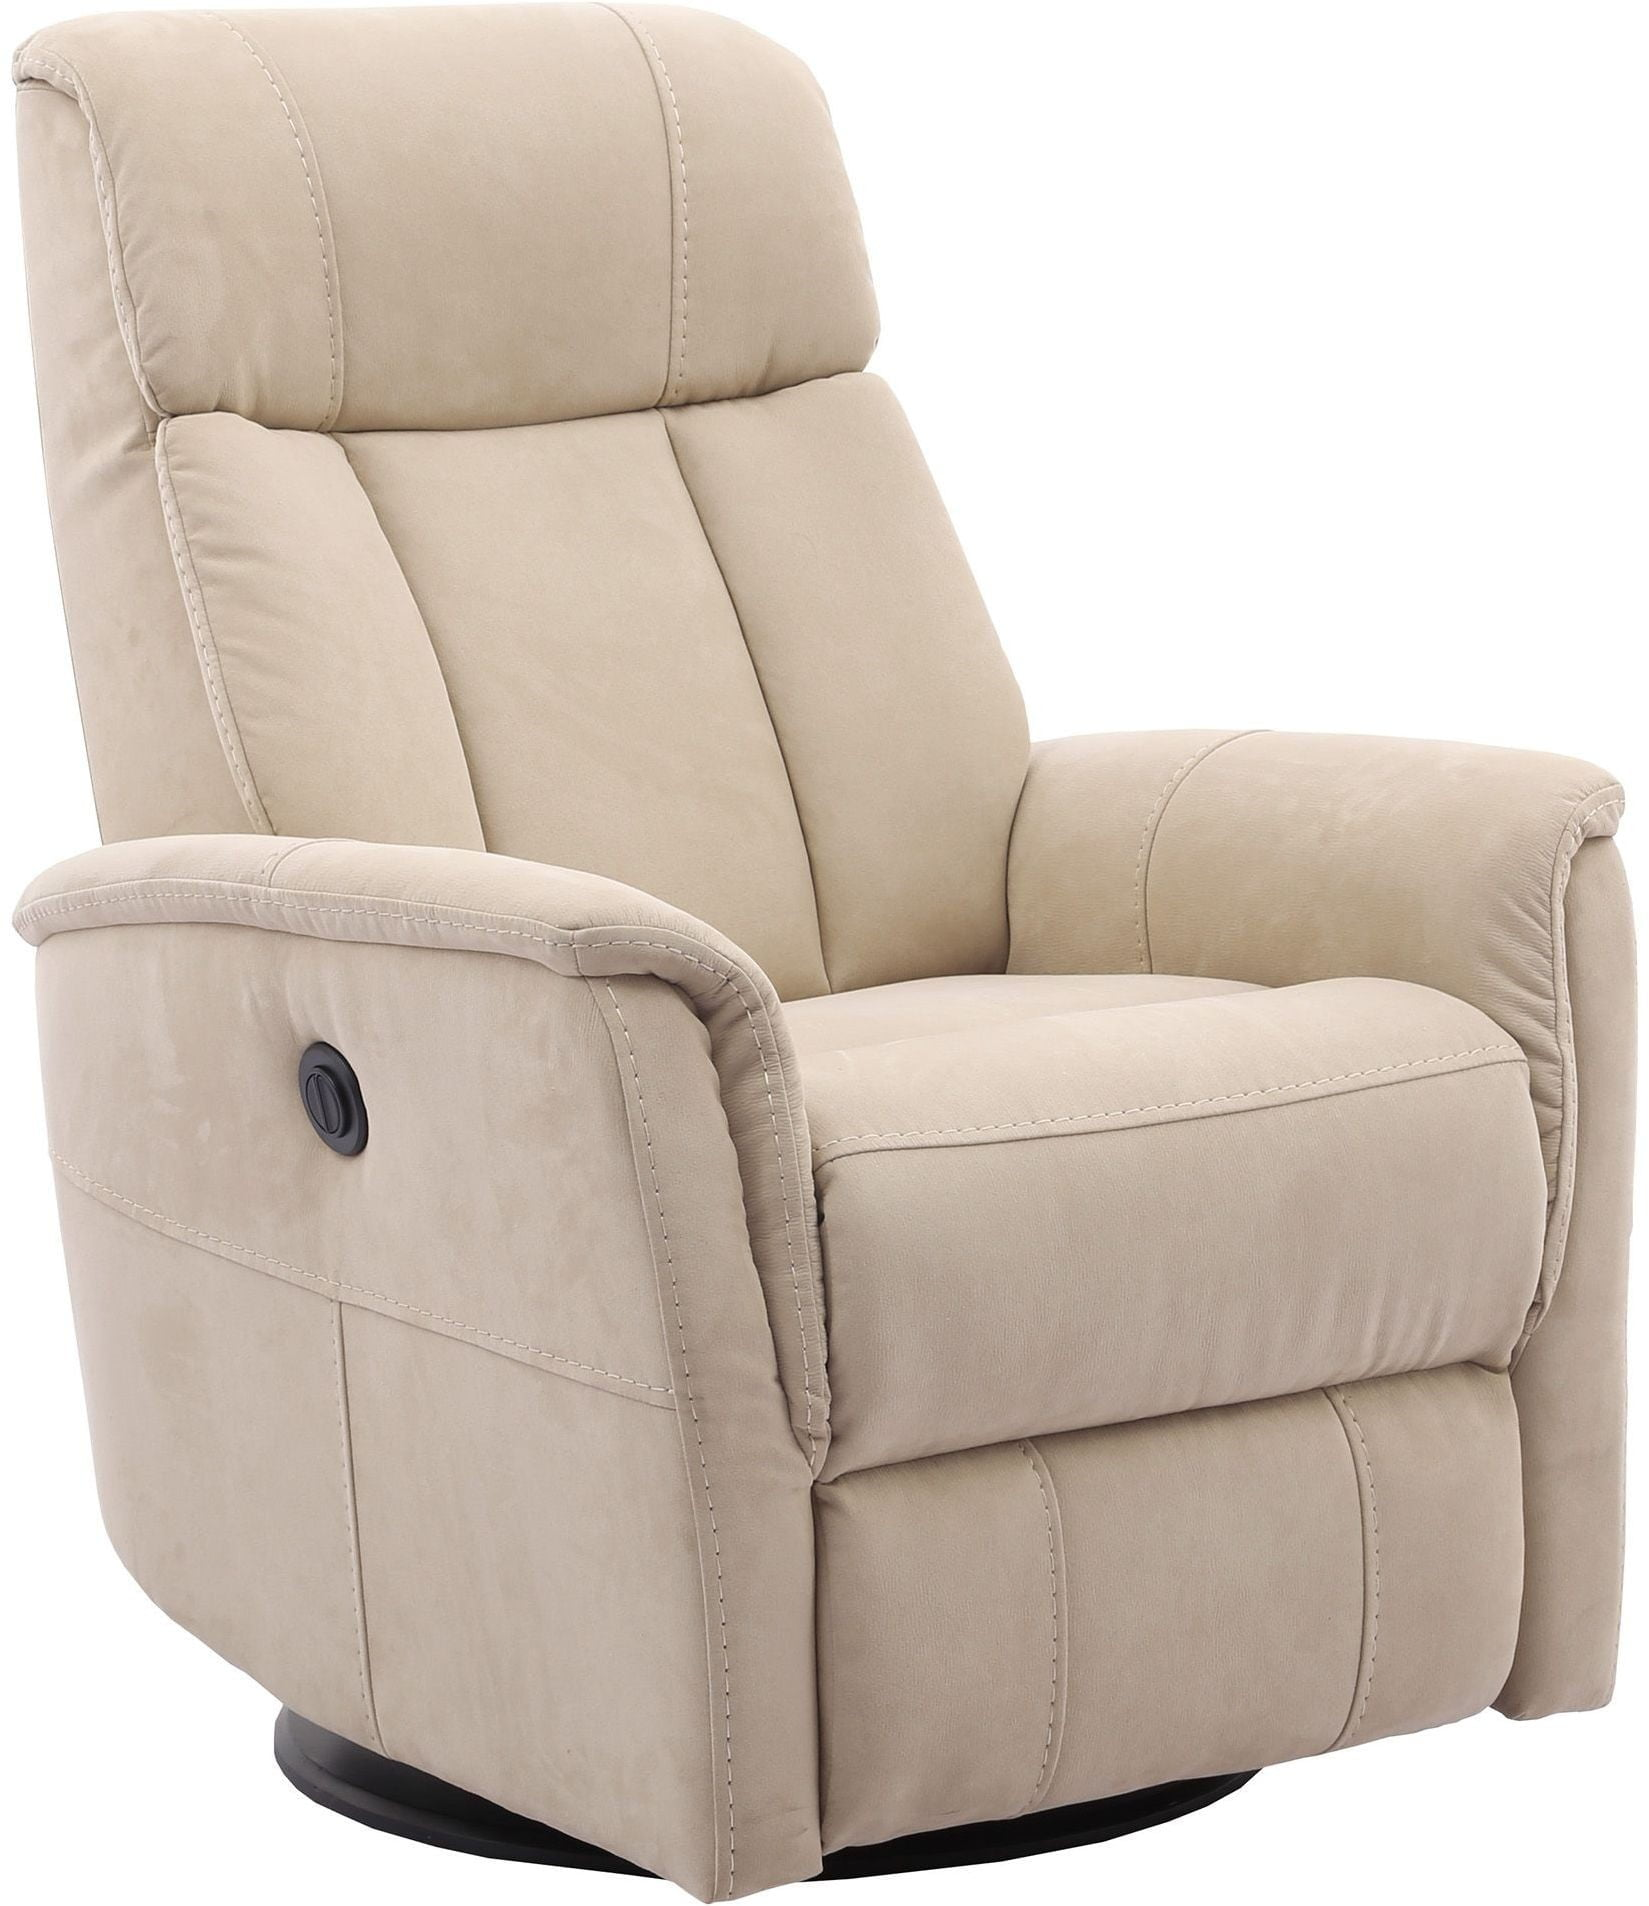 Holmes Gypsum Swivel Power Recliner From Parker Living | Coleman Furniture